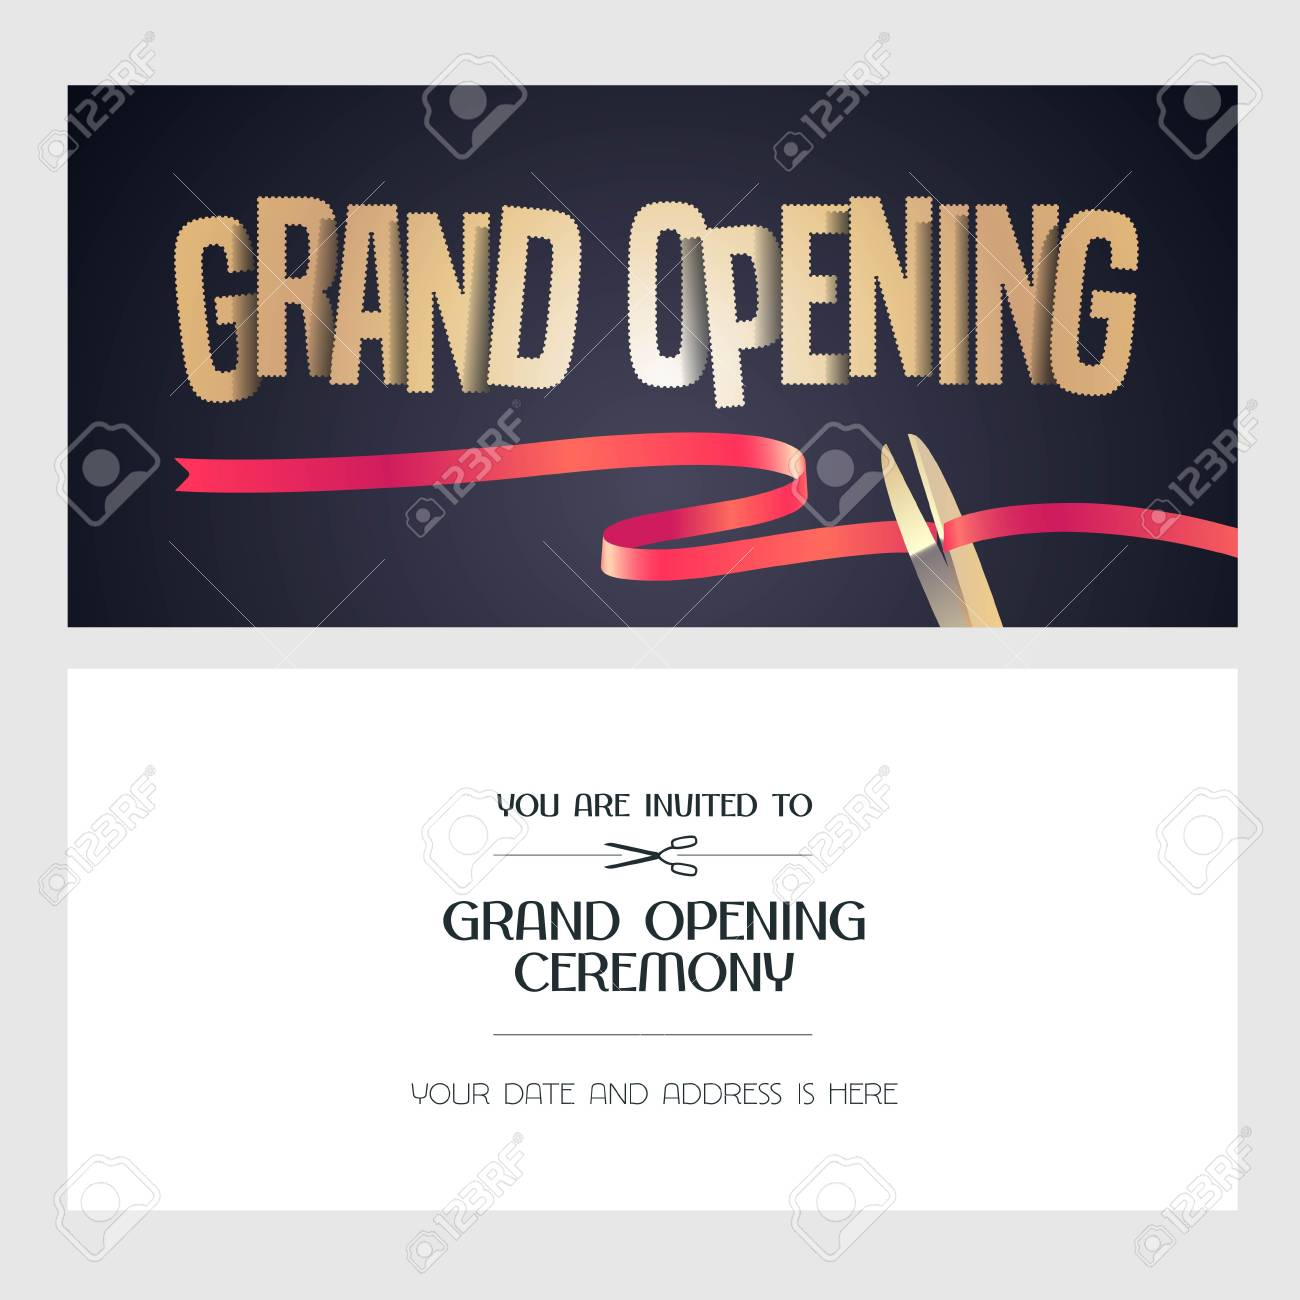 Grand Opening Vector Banner Illustration Invitation Card With